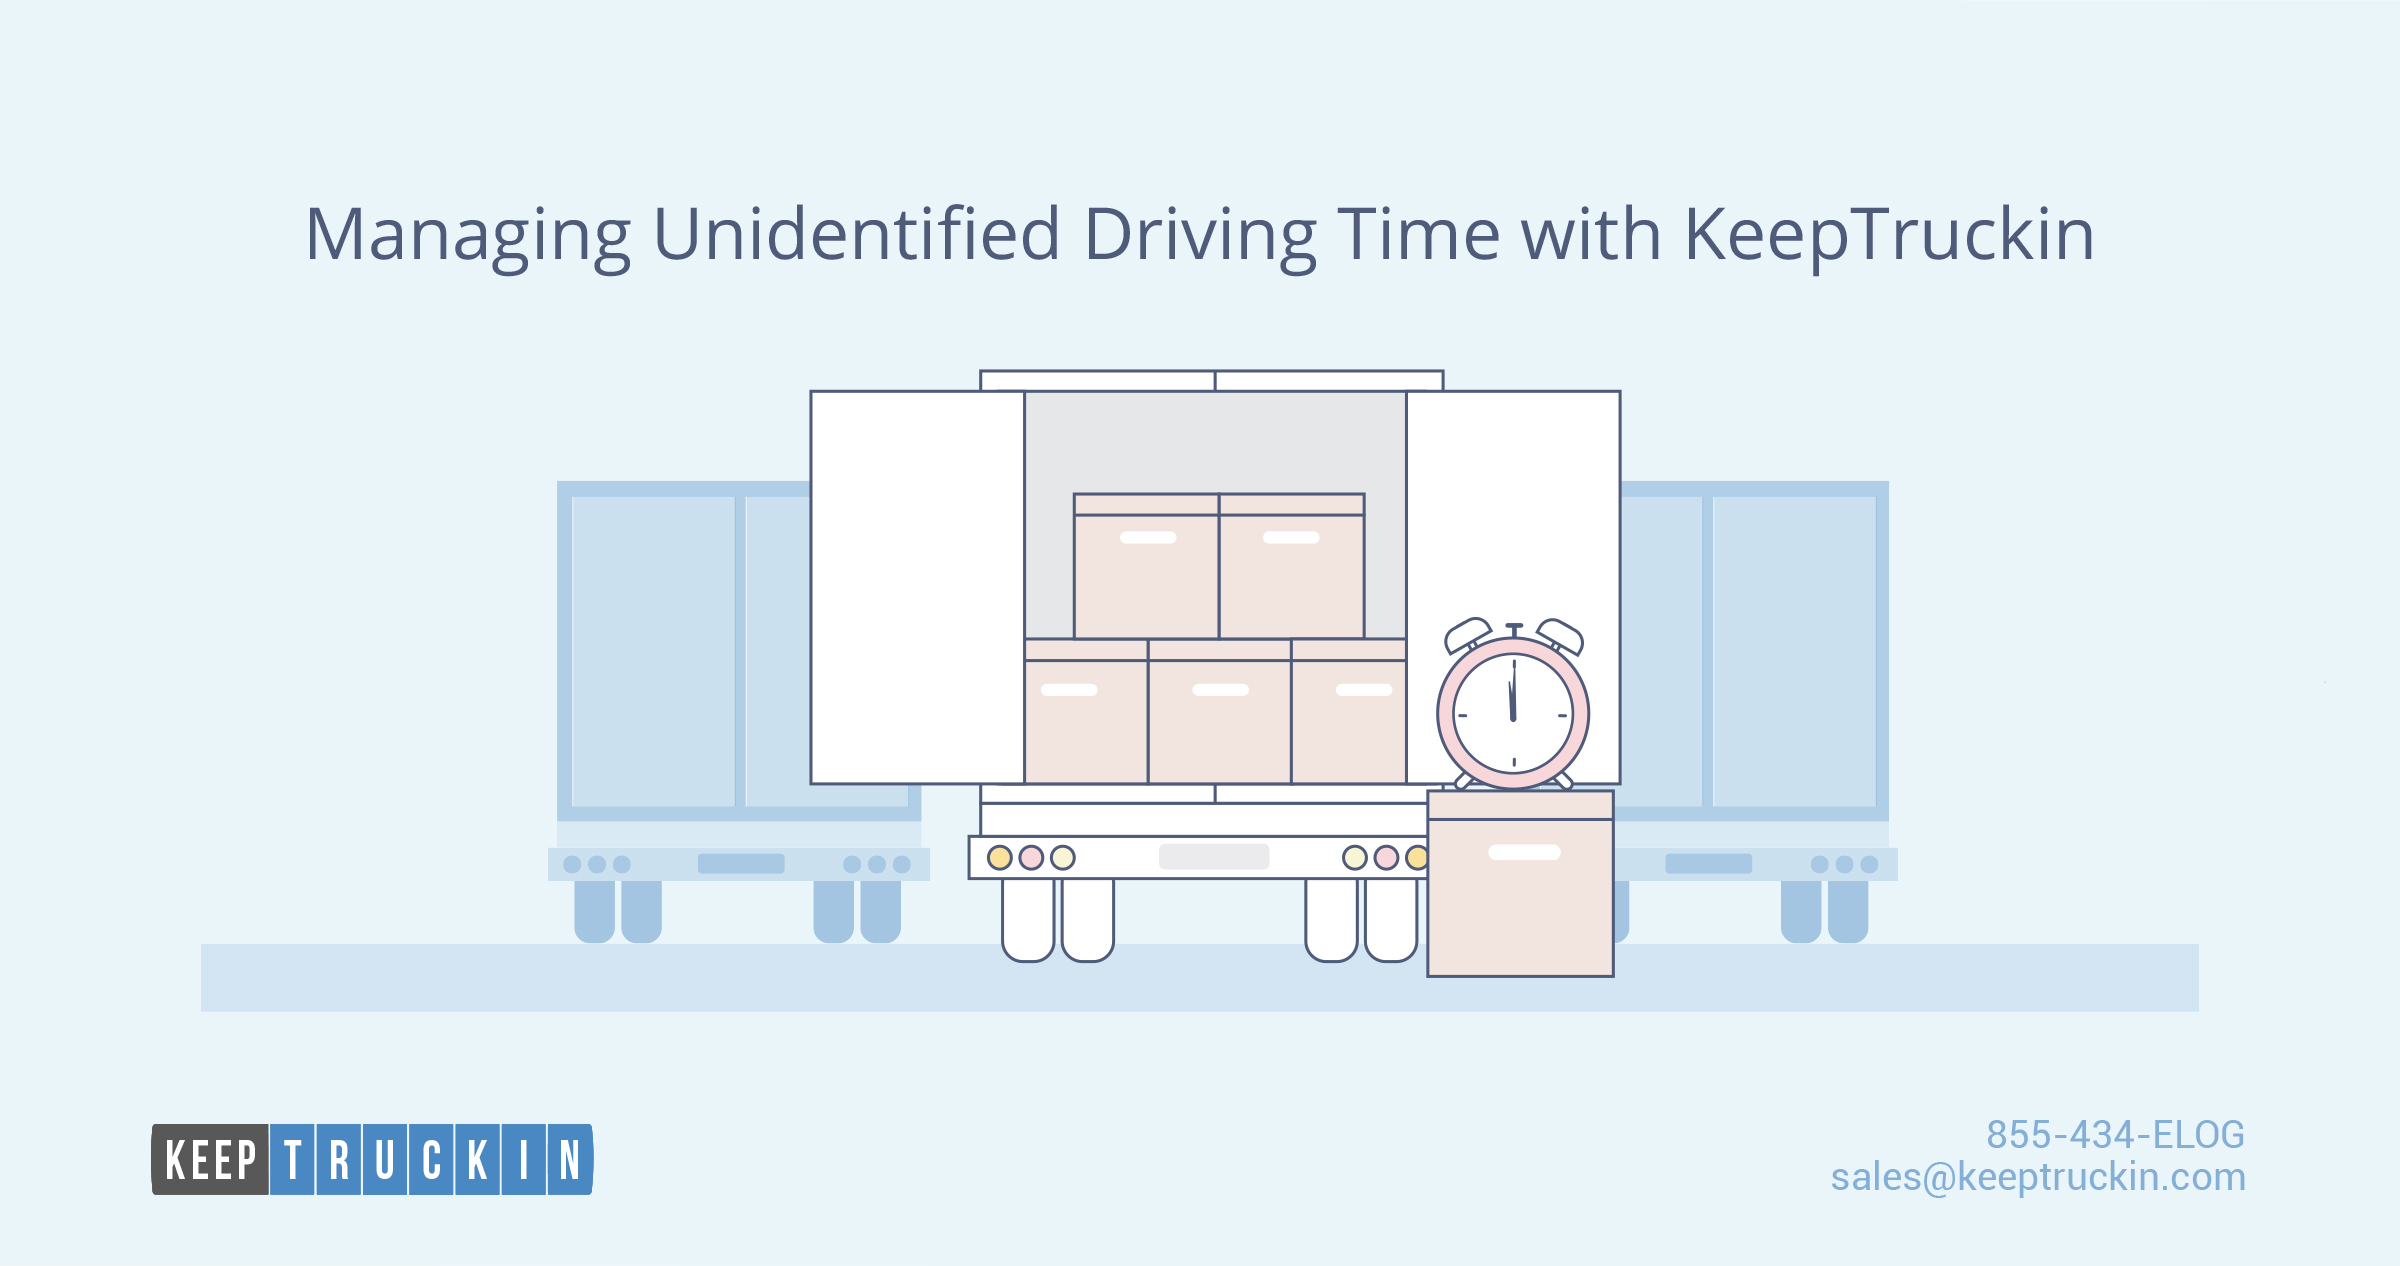 Managing Unidentified Driving Time with KeepTruckin